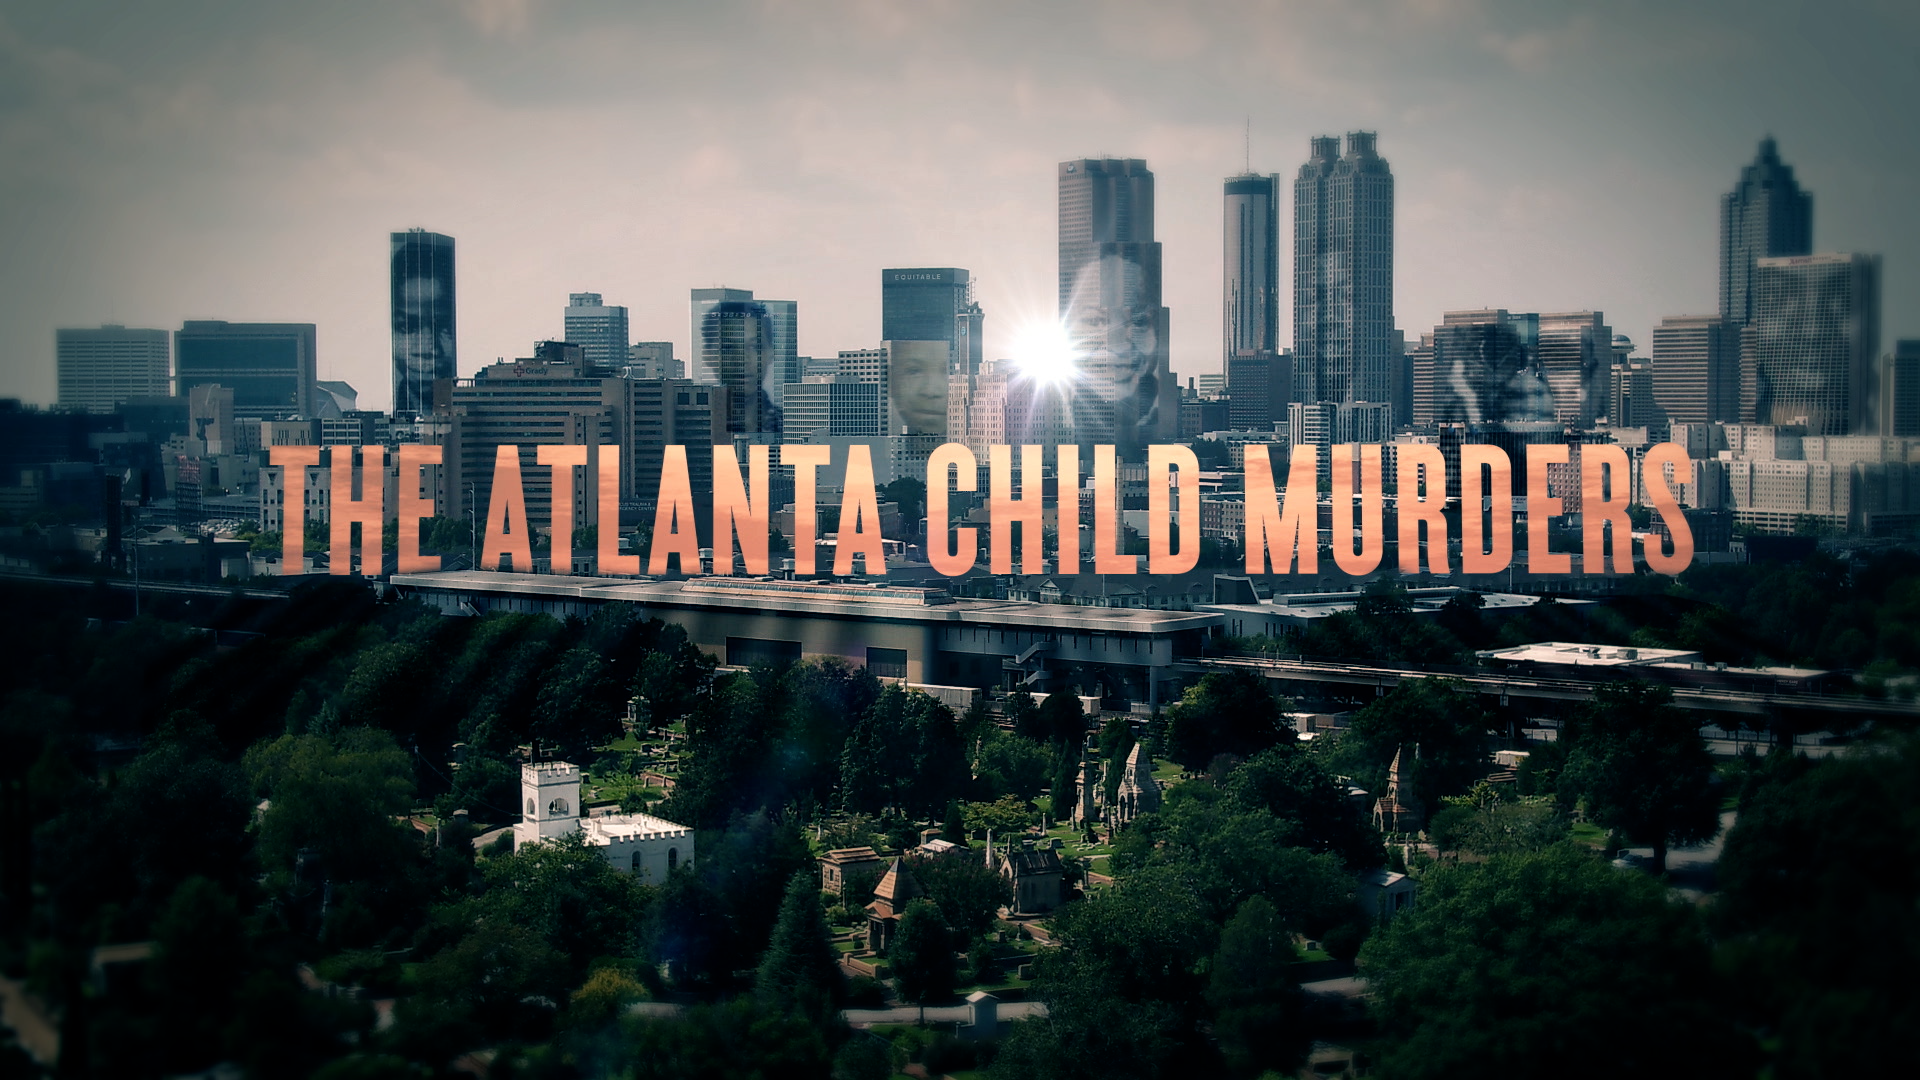 UNSILENCED: THE ATLANTA CHILD MURDERS